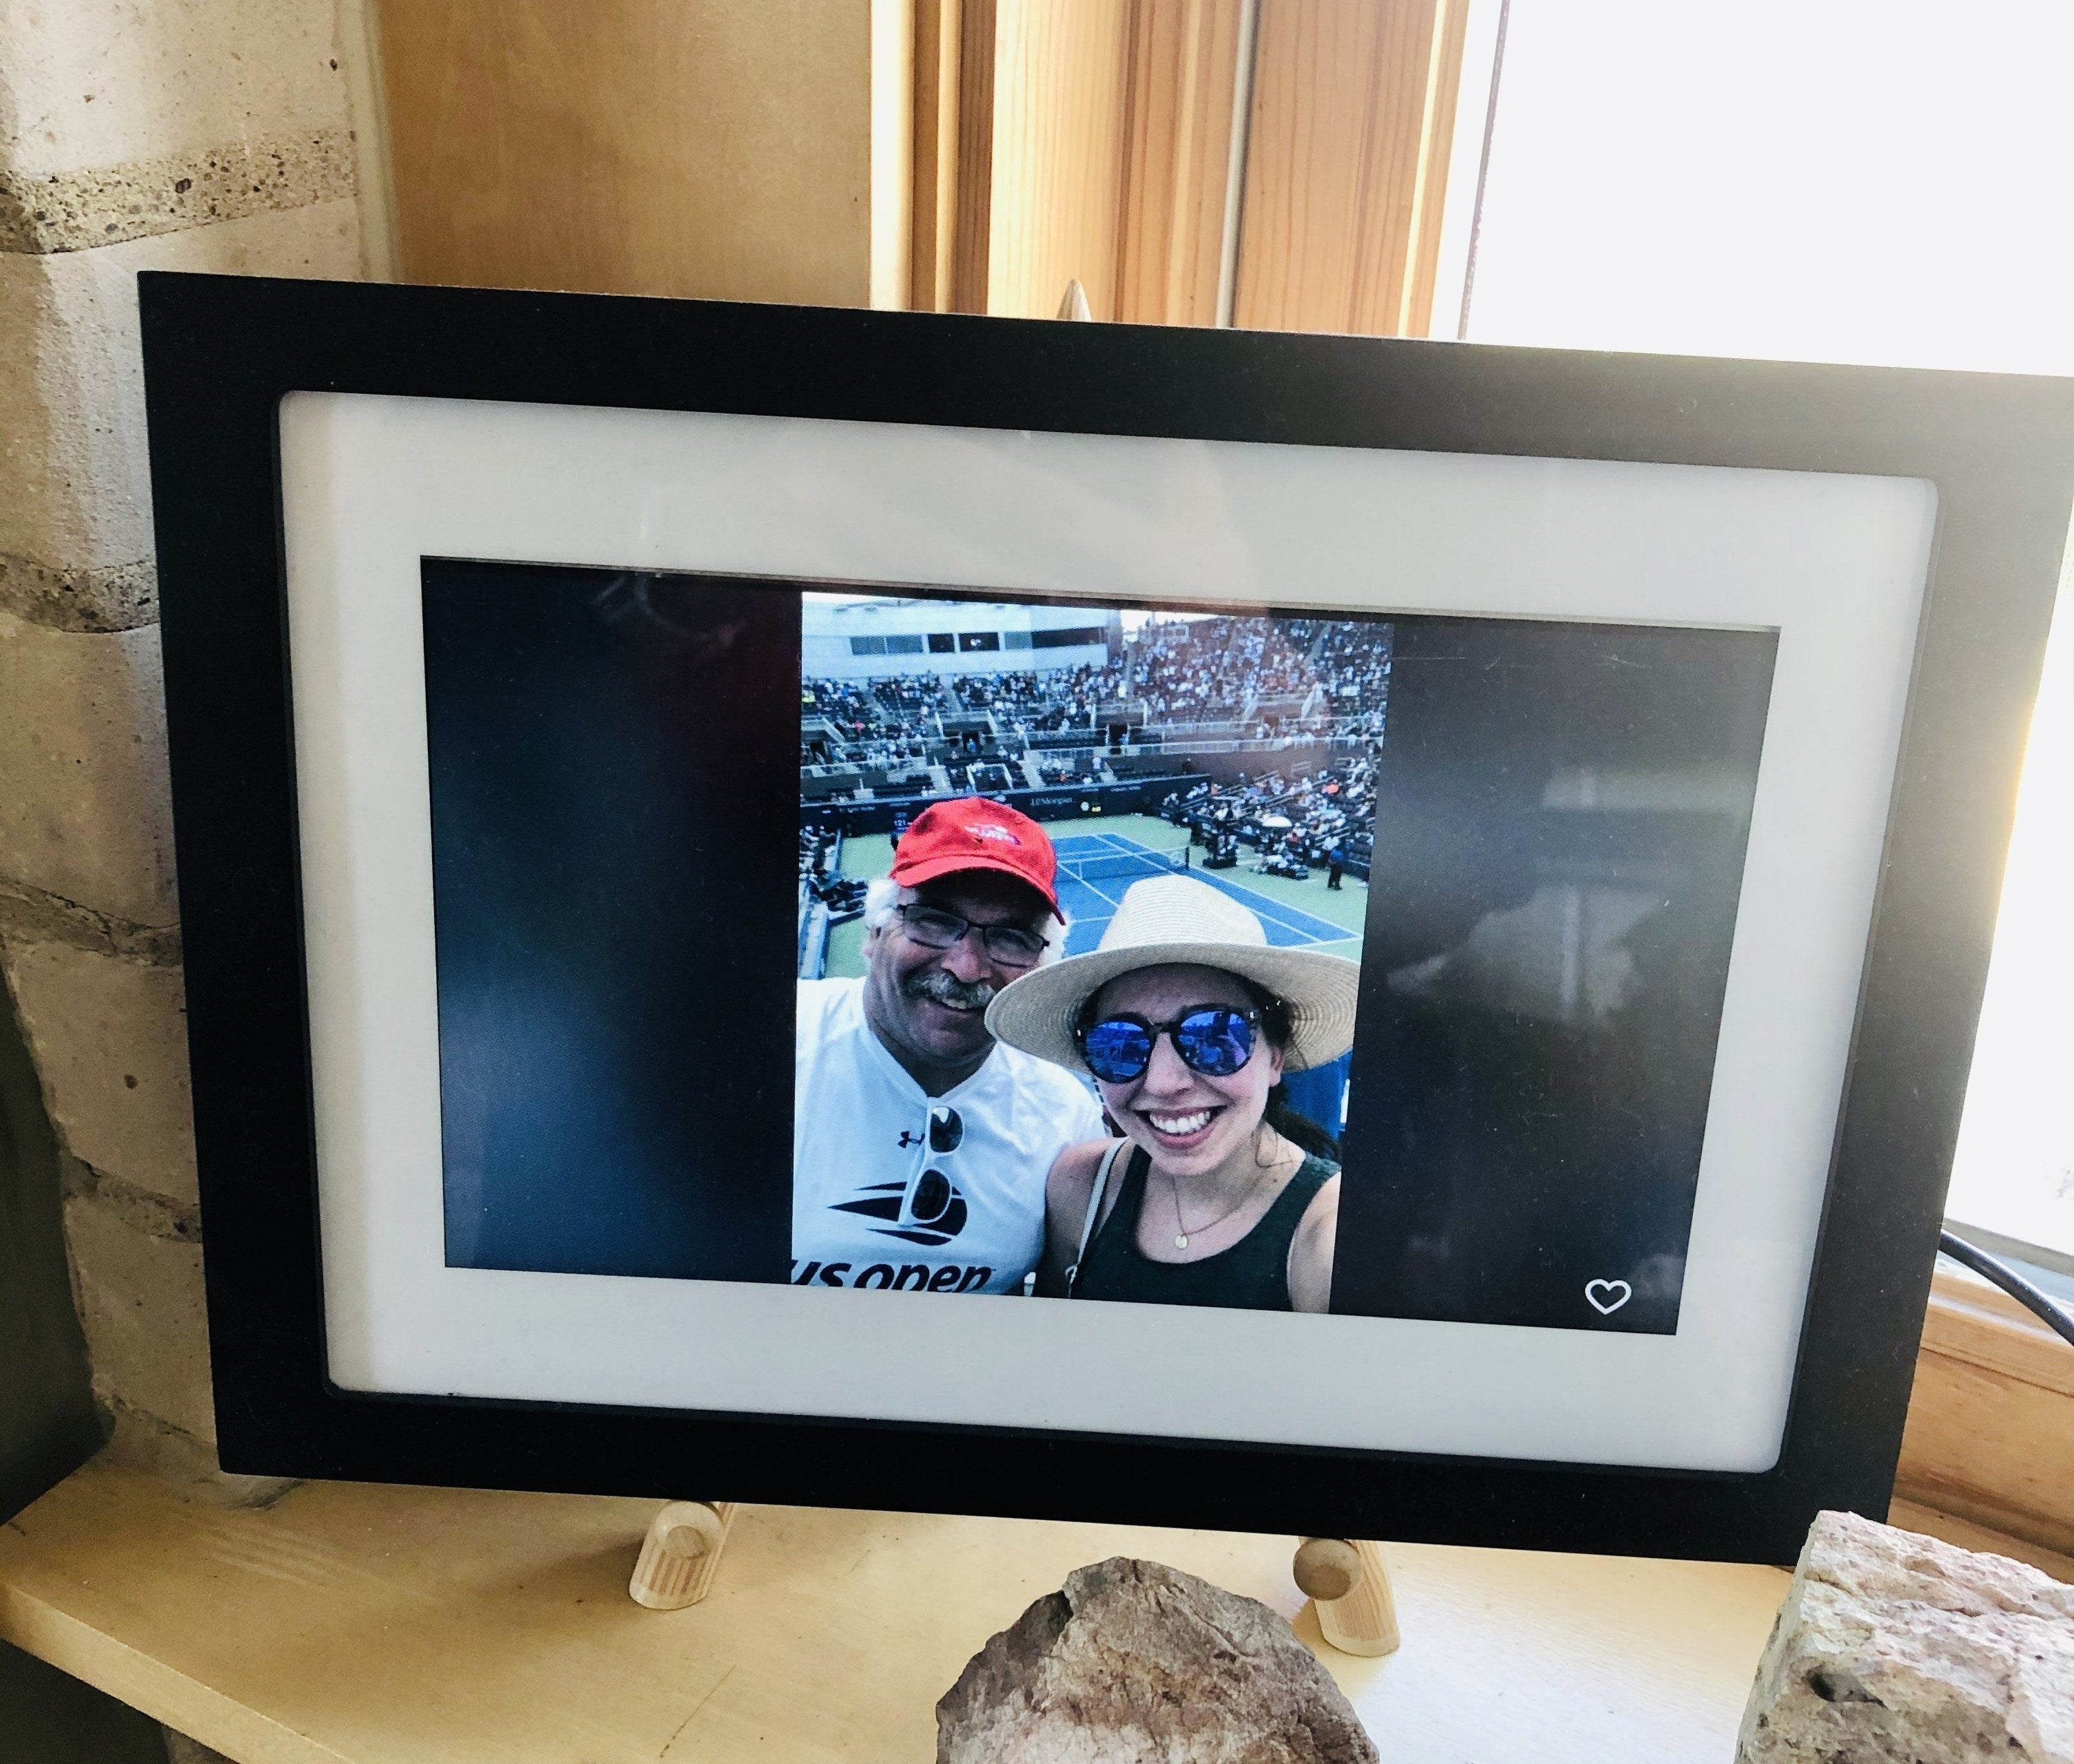 The frame with a white and black frame around the digital screen in the author's parent's home with a picture of her and her father at a tennis match